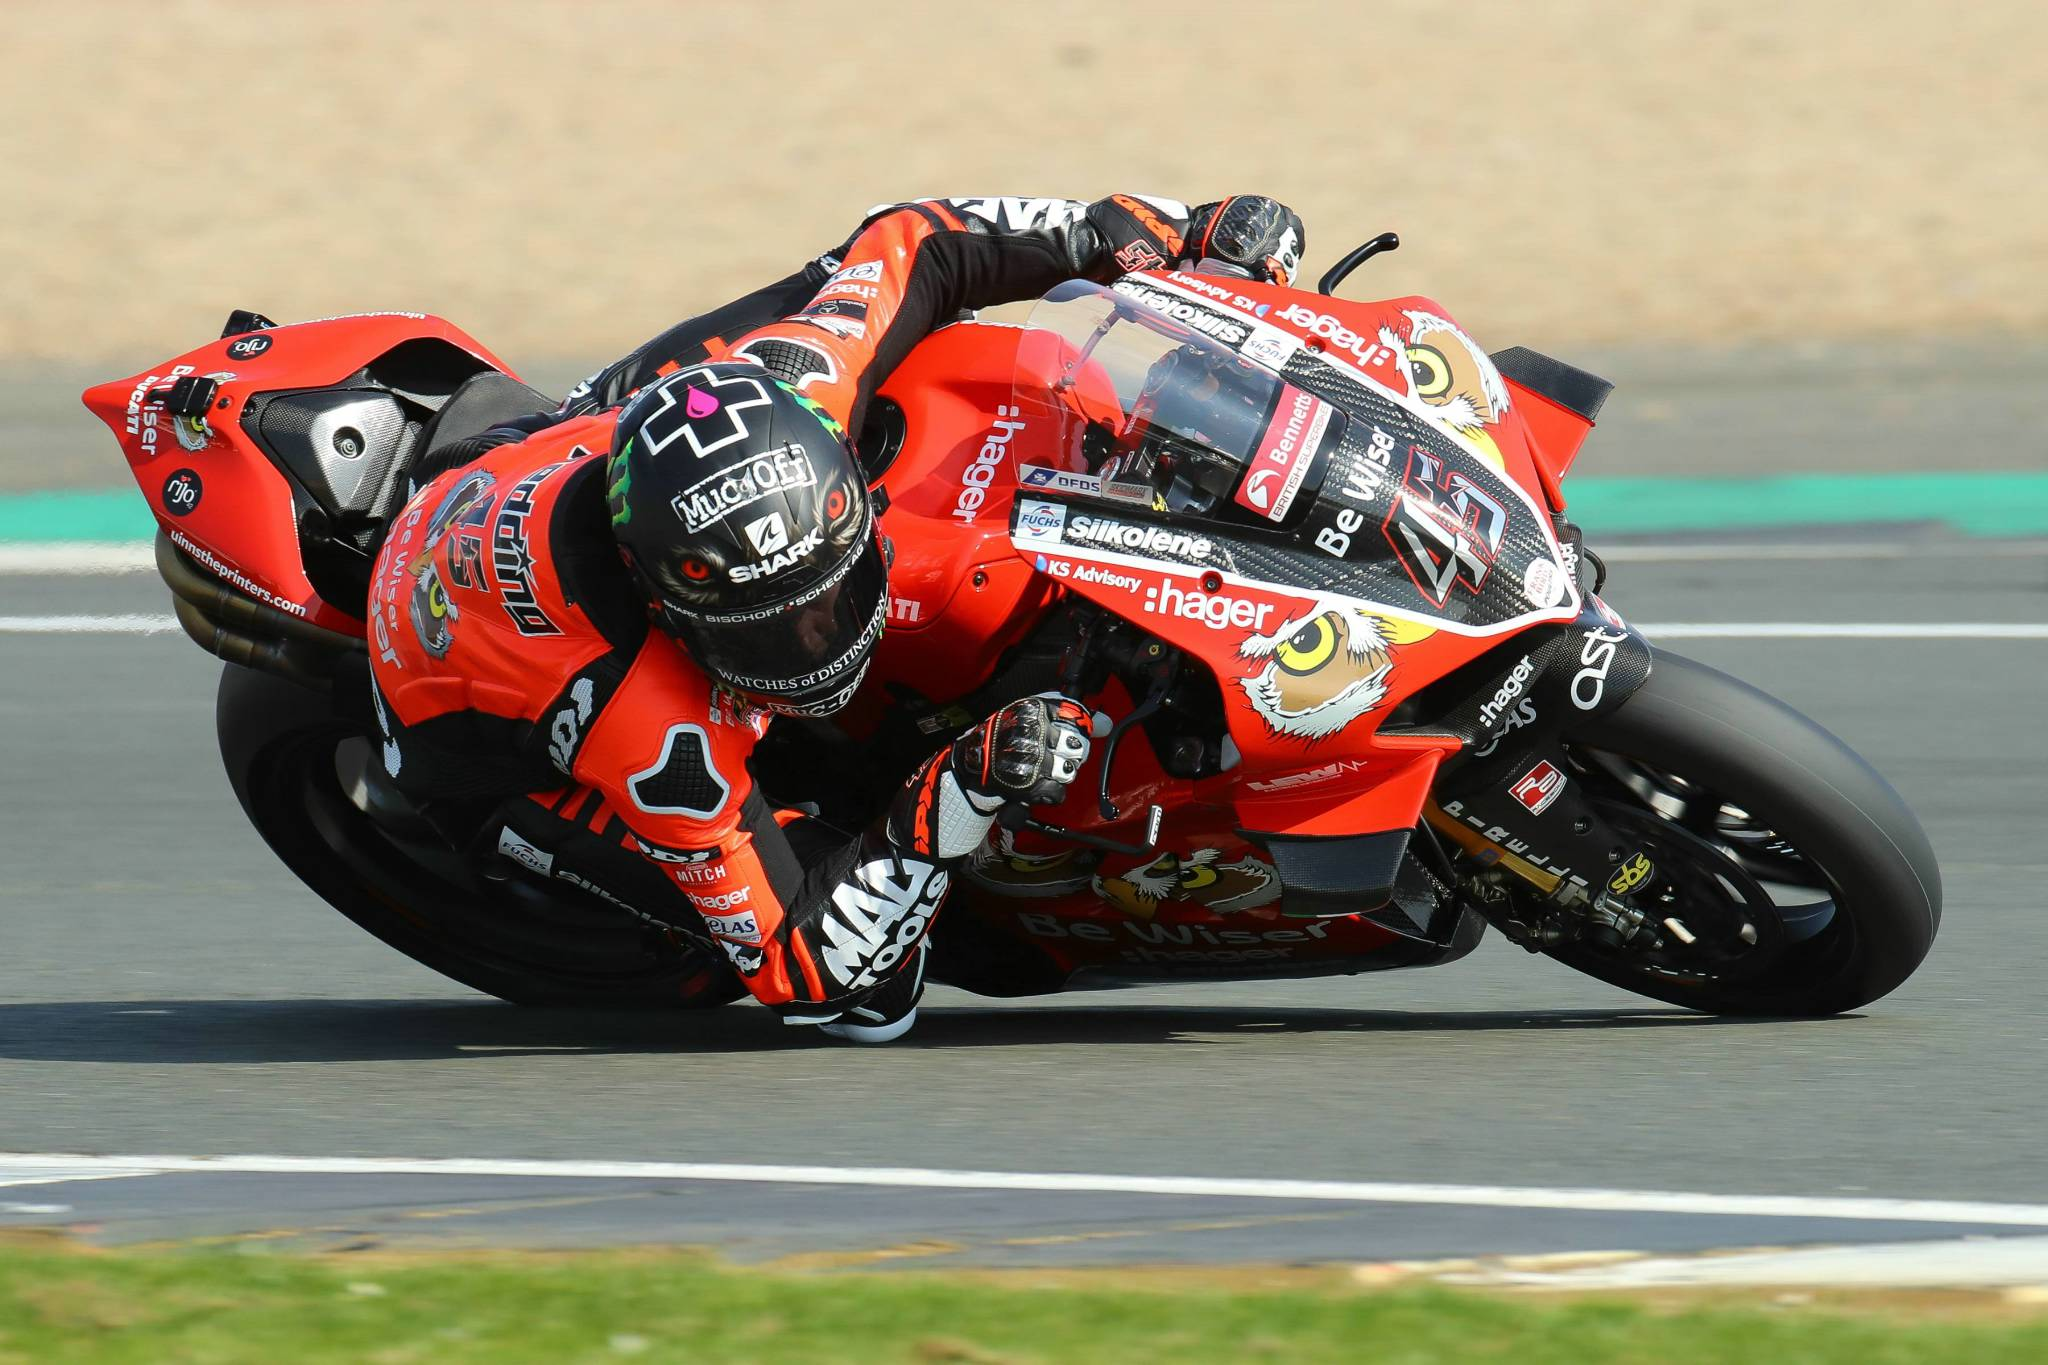 EXCLUSIVE: Redding on BSB, Ducati & why he 'f***ing hates' electronics